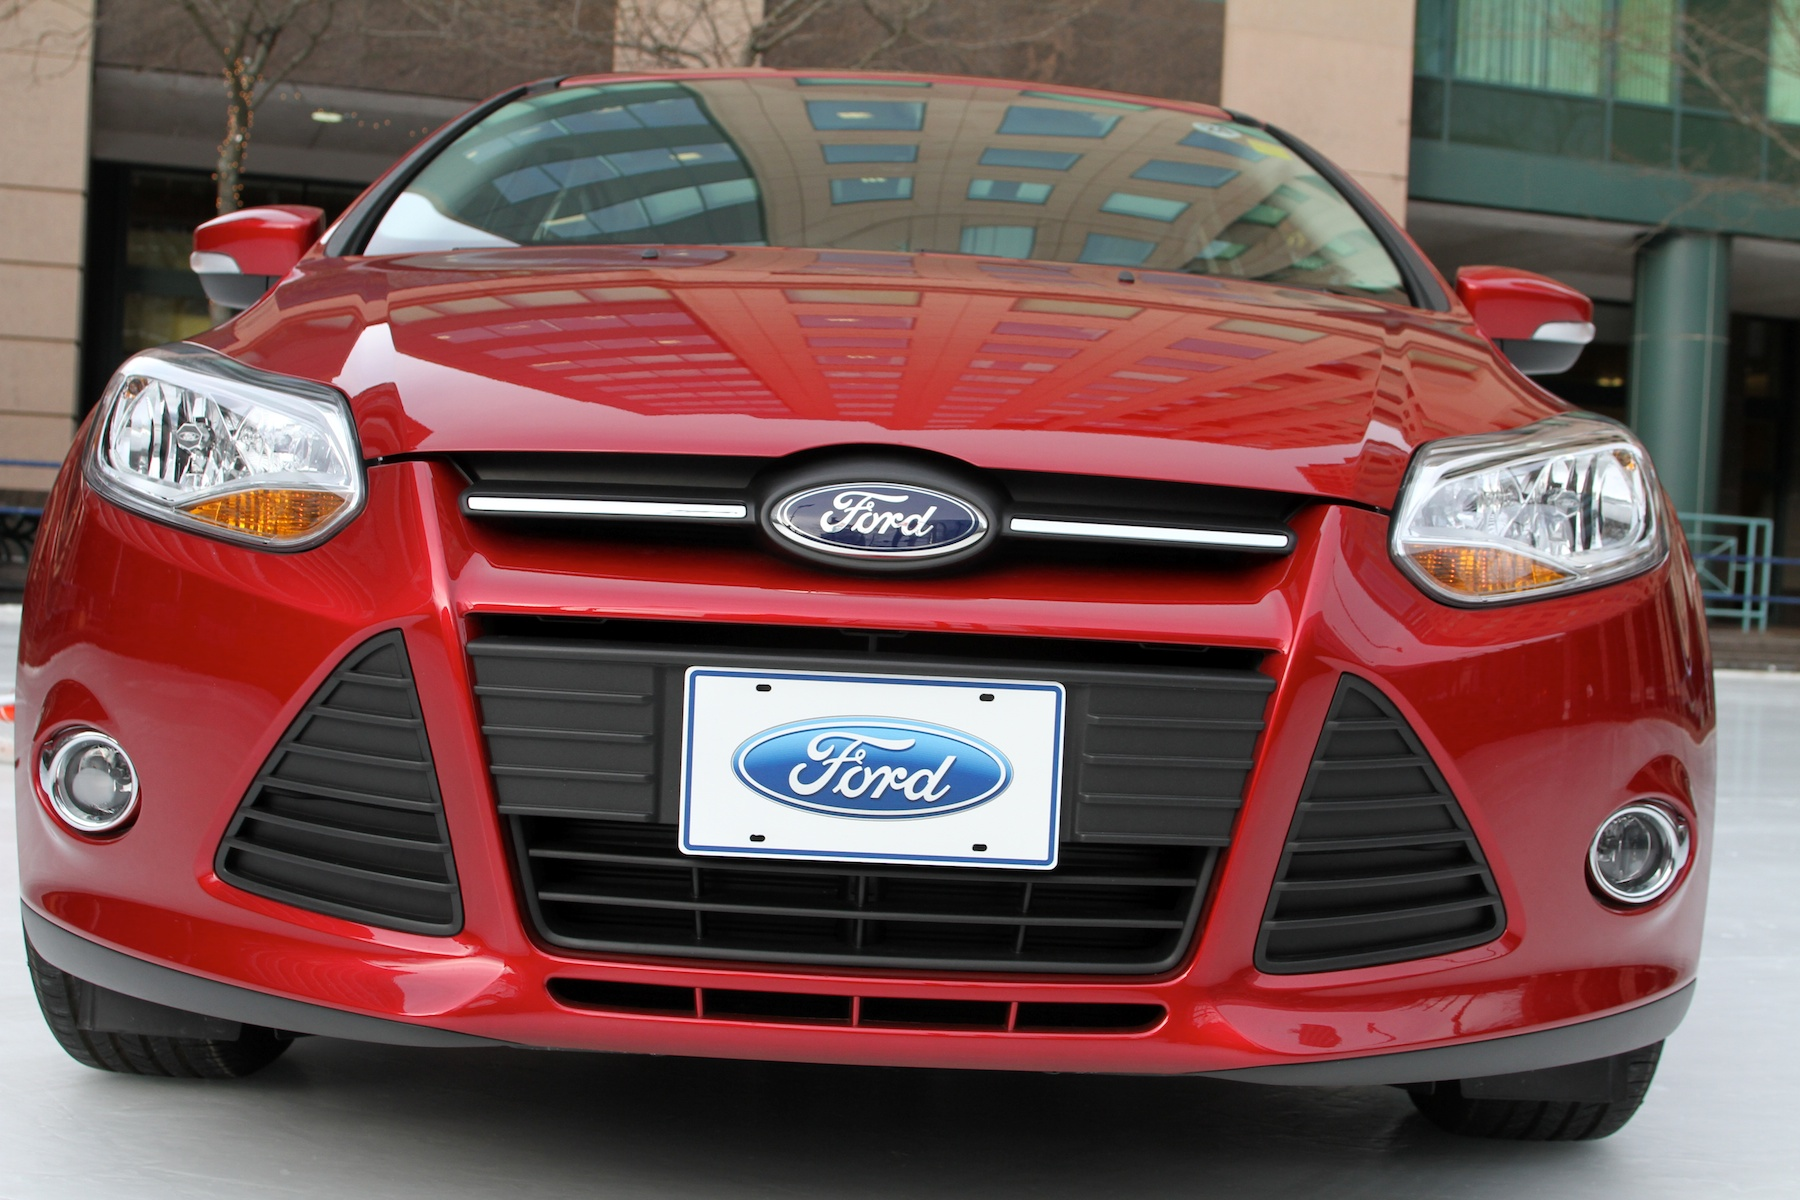 Ten eligible contestants will shoot-to-win a new Ford Focus during Labatt Blue Street Hockey Tournament